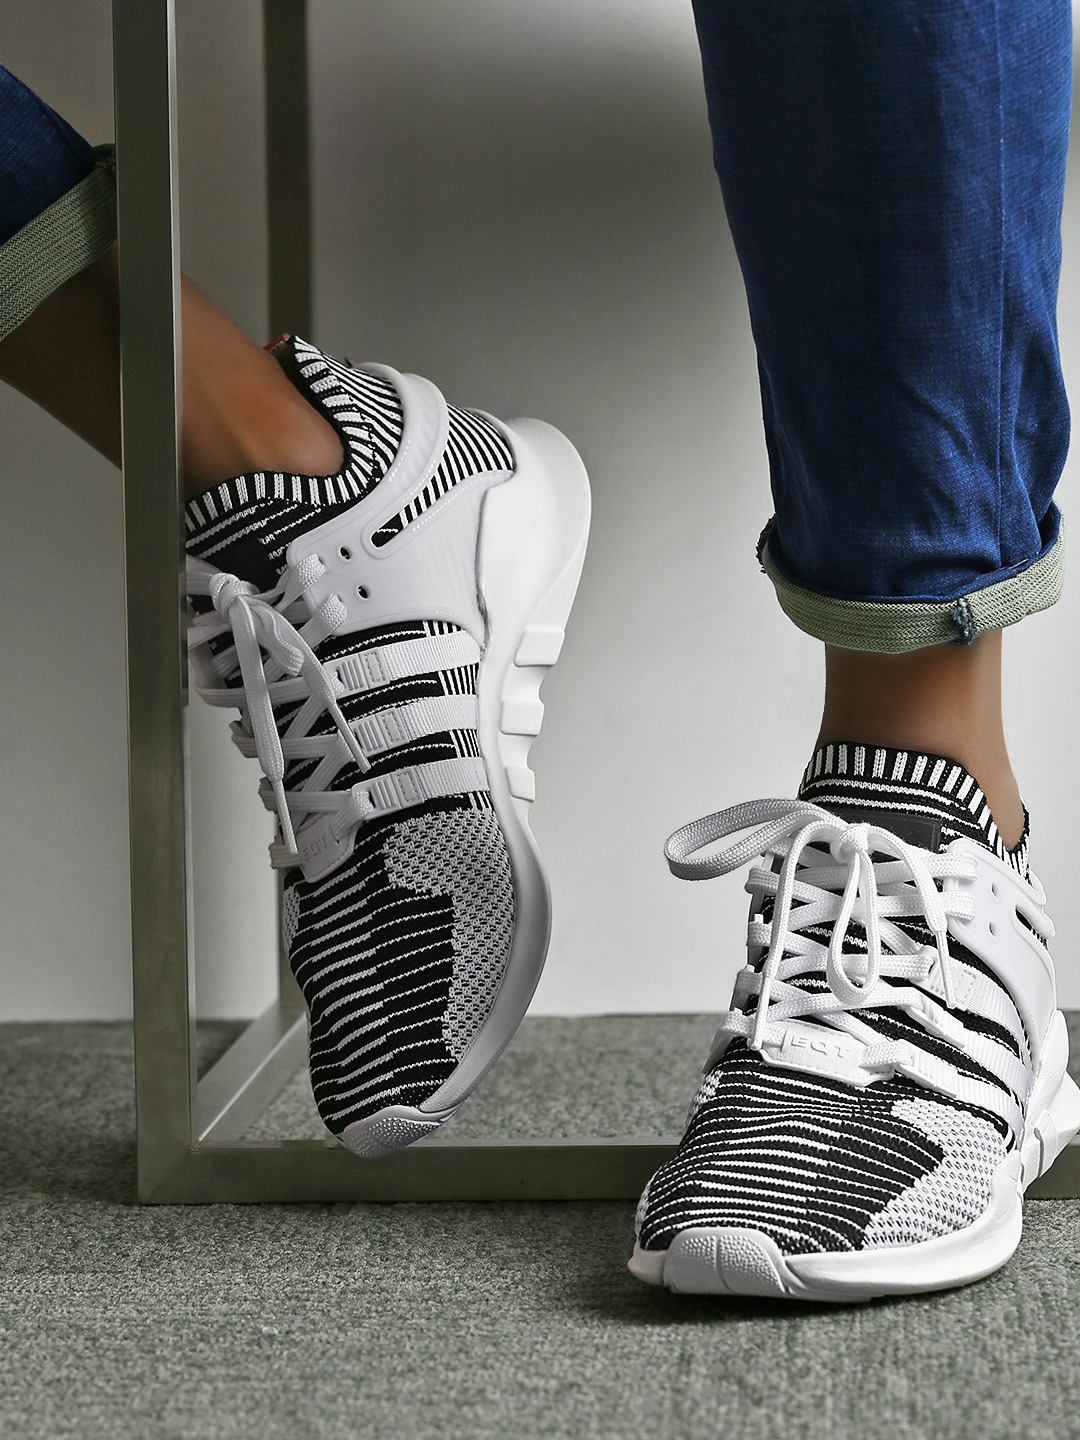 new concept 79840 9f067 Buy ADIDAS Originals Men White  Black EQT Support ADV Primeknit Woven  Sneakers - Casual Shoes for Men 1774913  Myntra